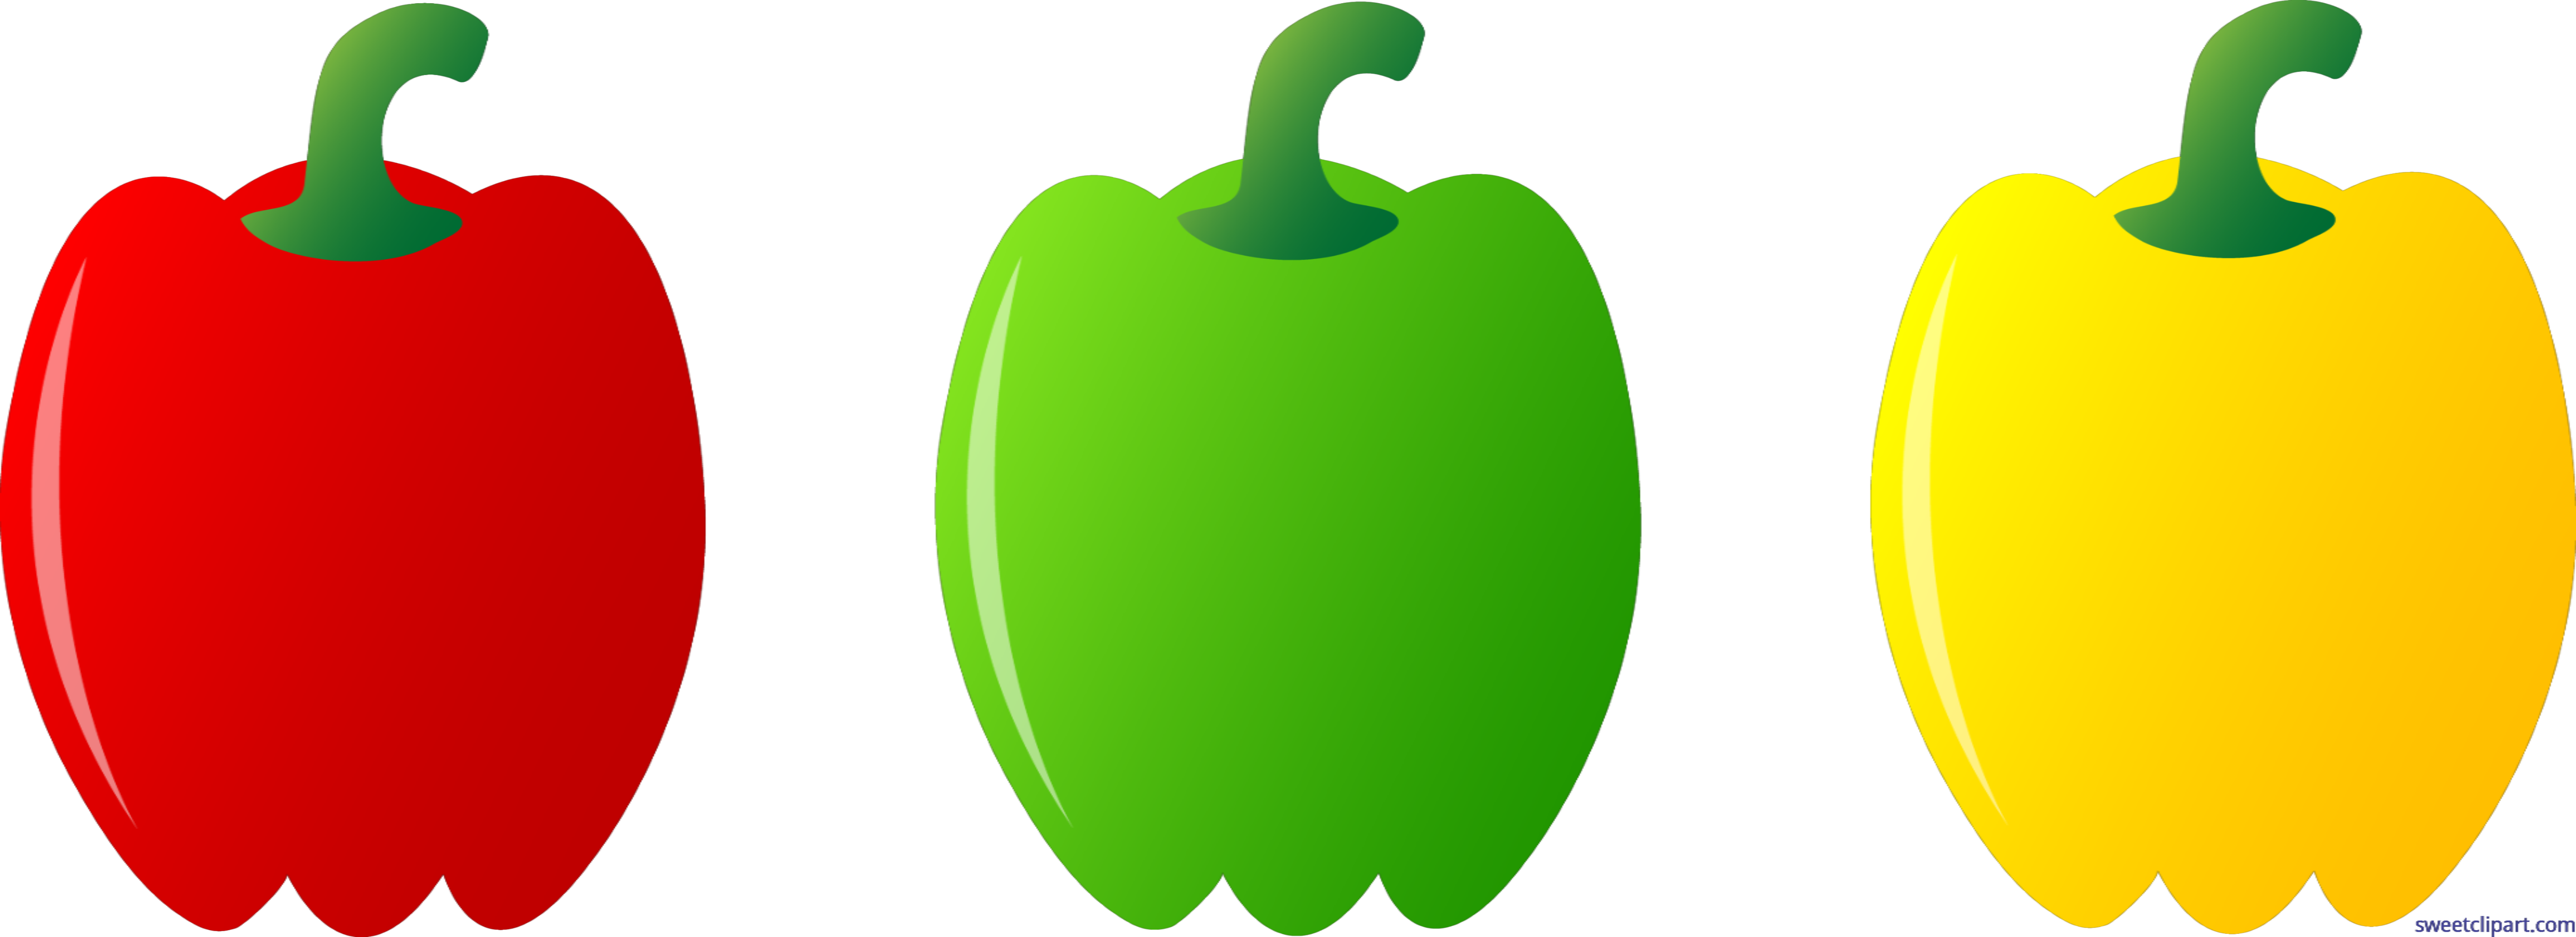 Clipart bell peppers image download Three Bell Peppers Clip Art - Sweet Clip Art image download